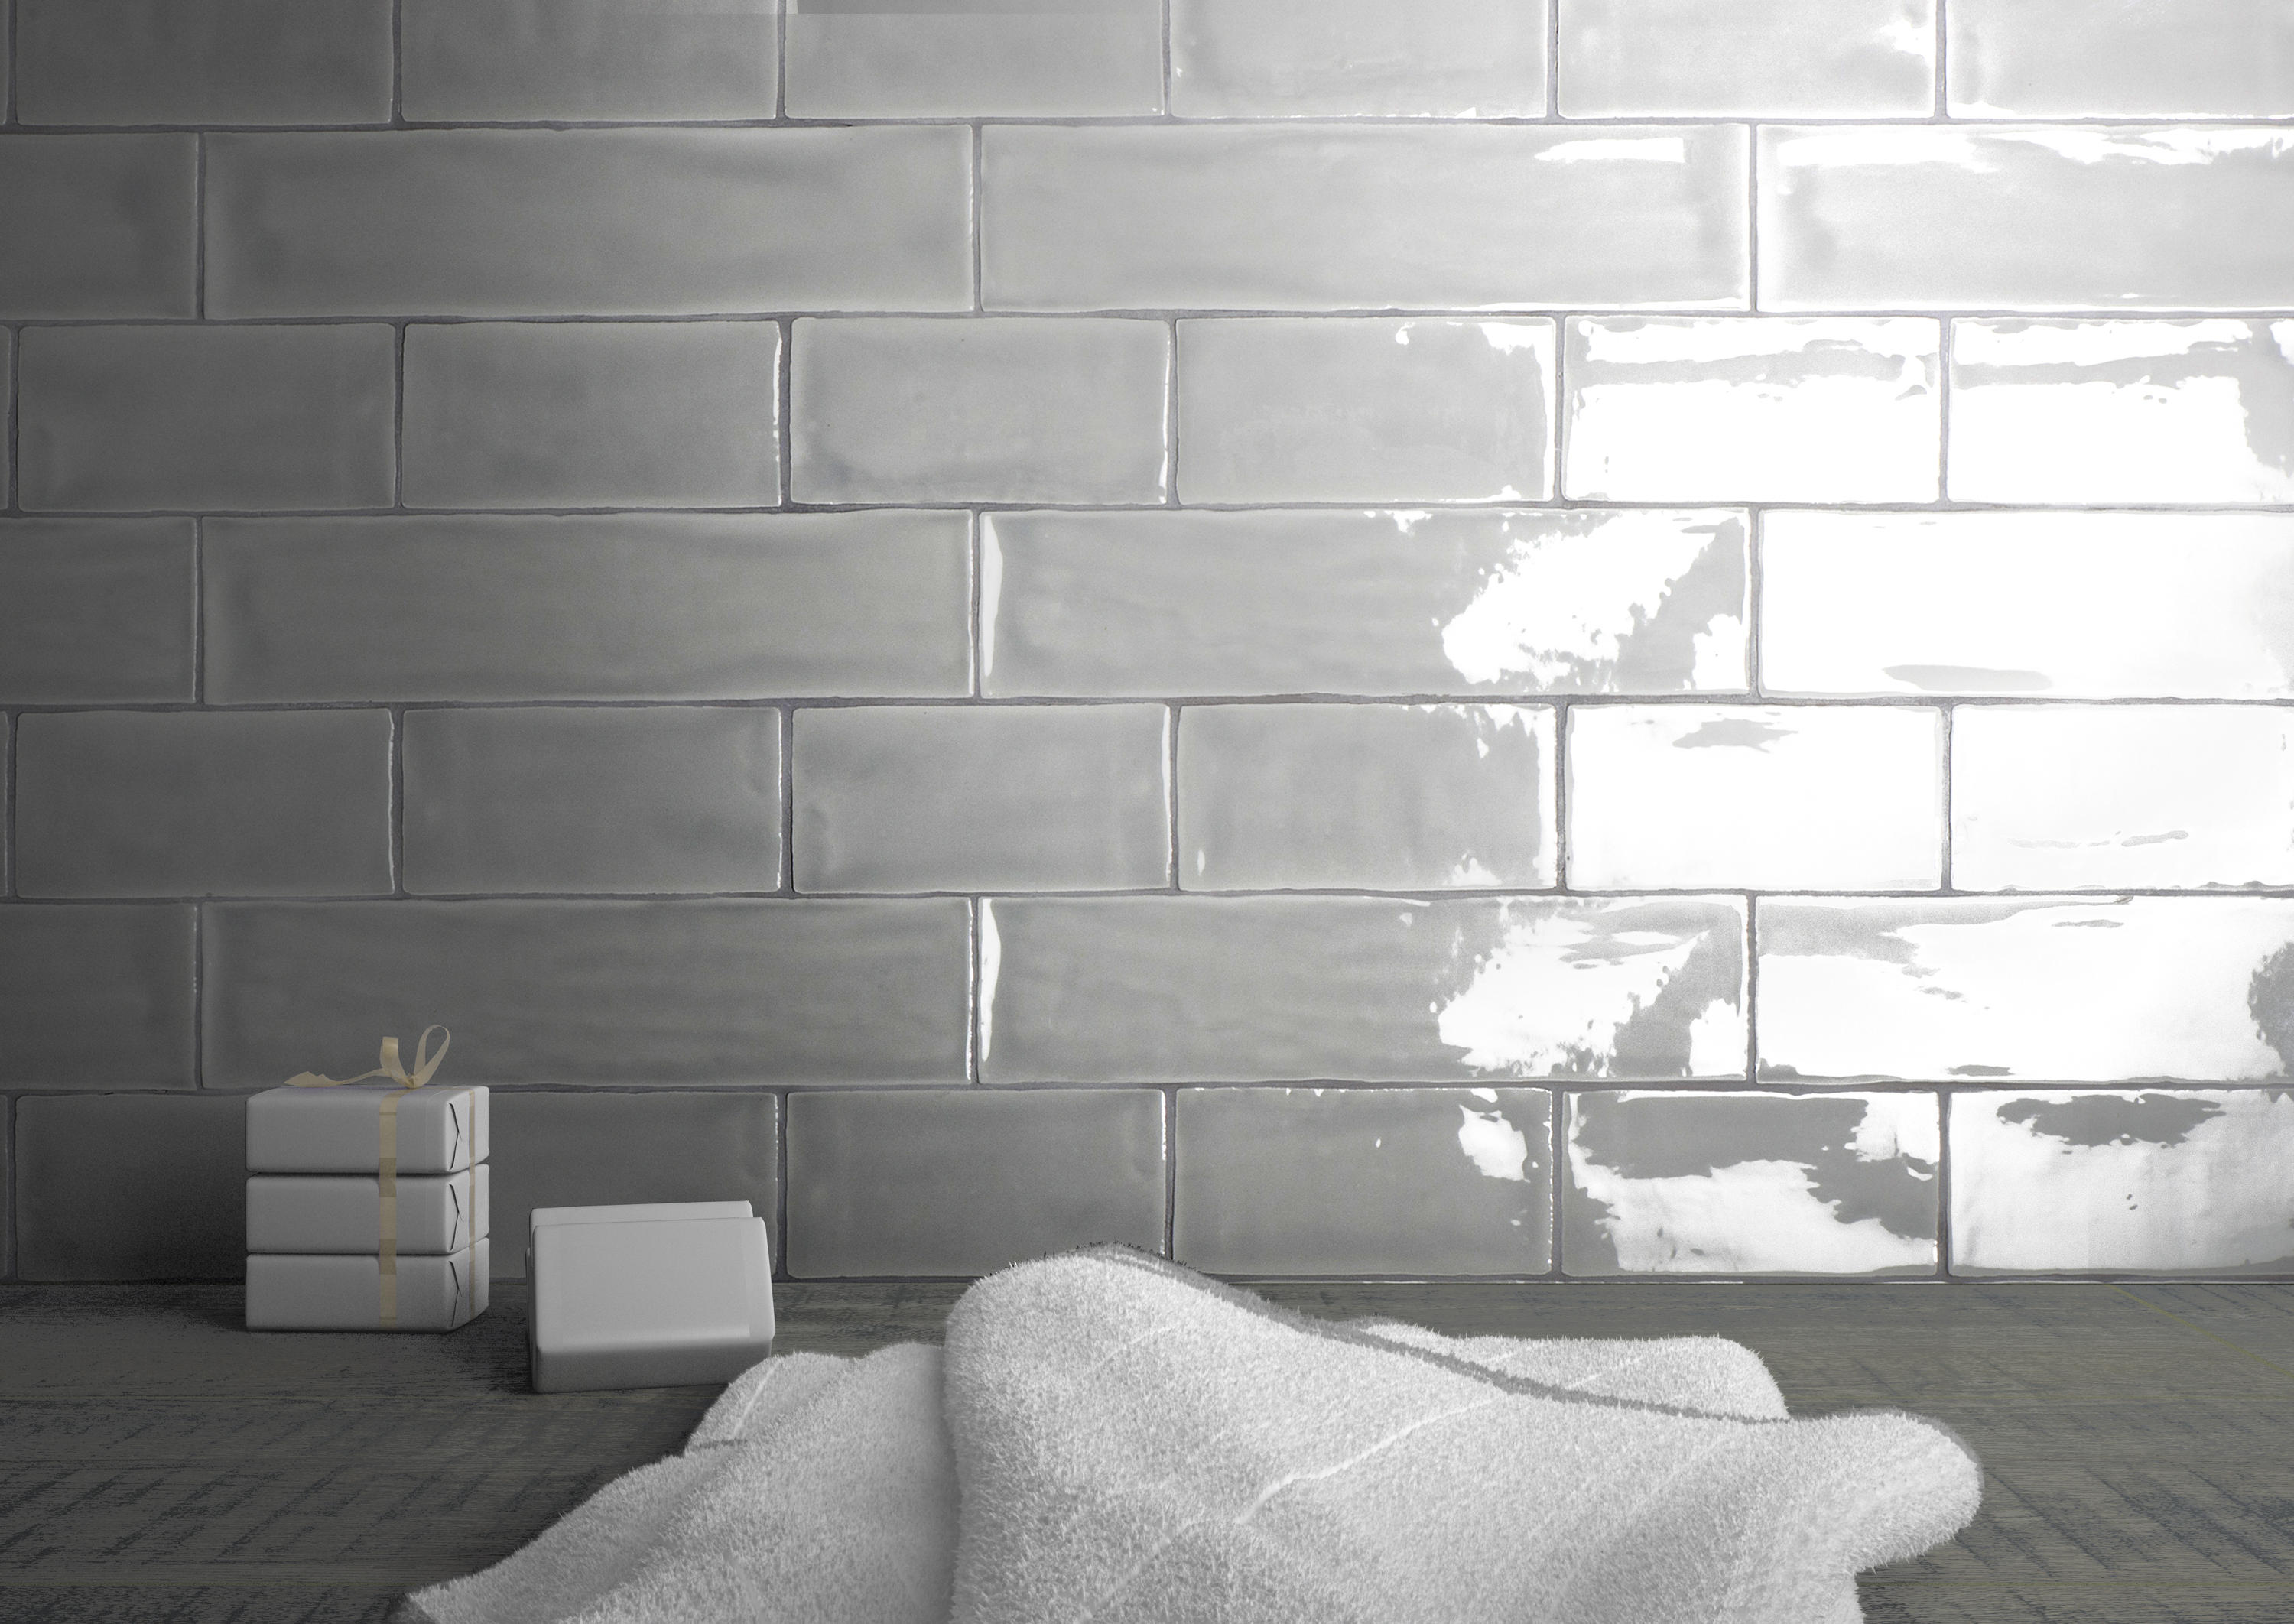 Mayolica White Ceramic Tiles From Living Ceramics Architonic - Mayolica-azulejos